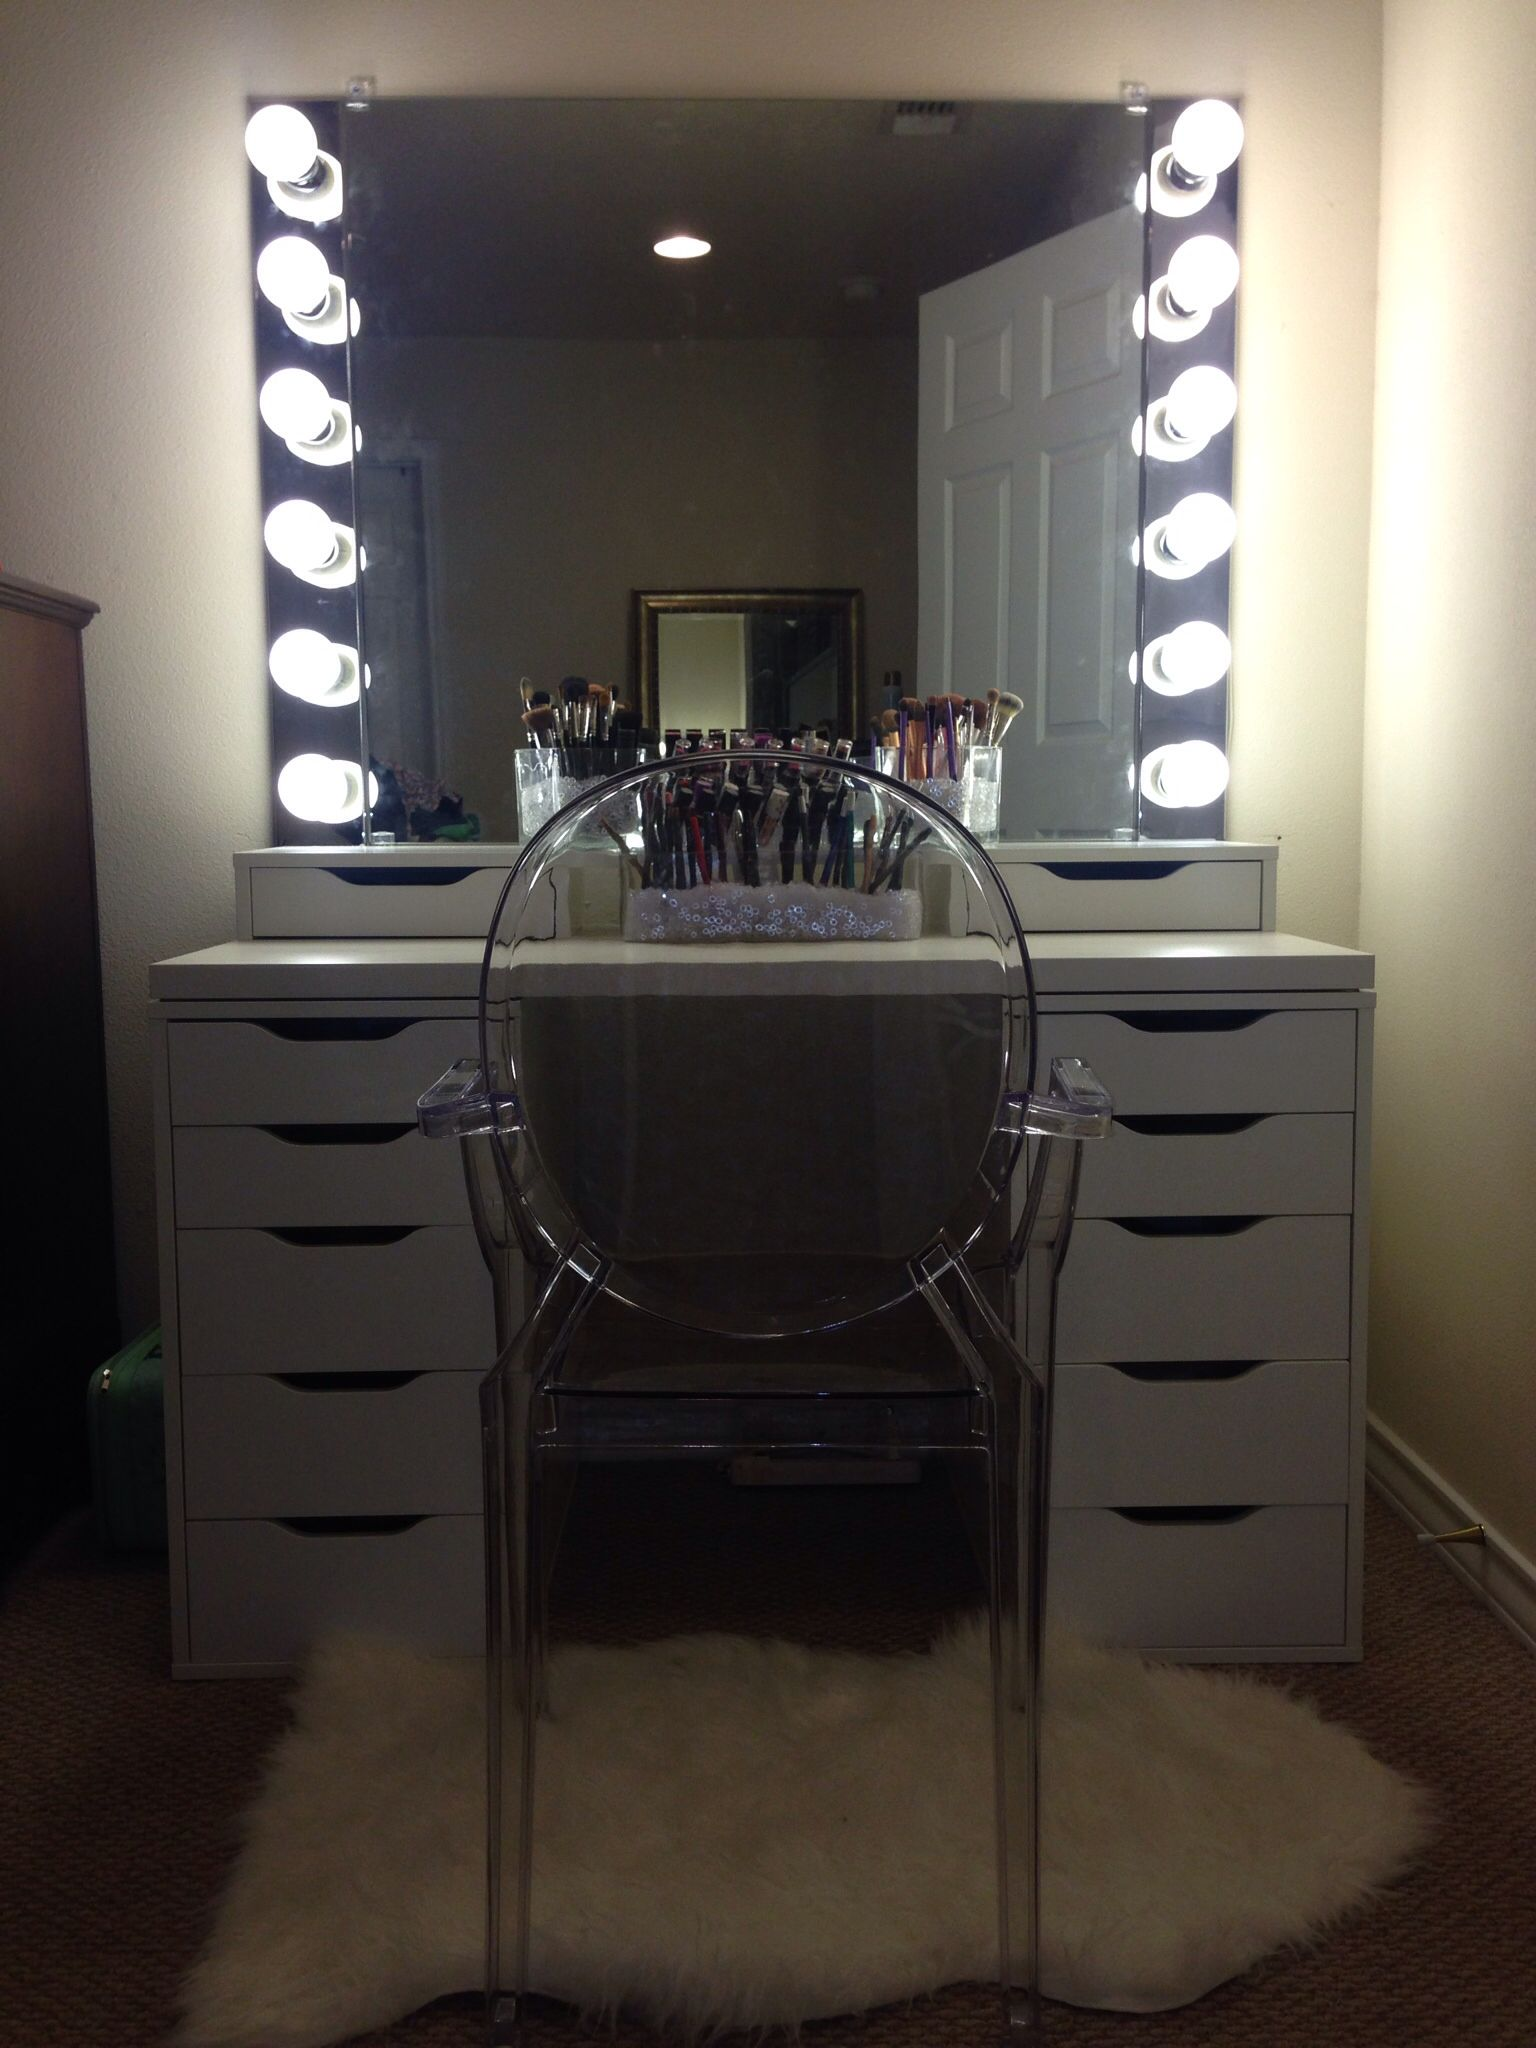 Attrayant Hollywood Vanity Mirror With Lights, Makeup Vanity Mirror With Lights,  Vanity Mirror With Lights Ikea, Lighted Makeup Mirror, #Hollywood #Lights # Vanity